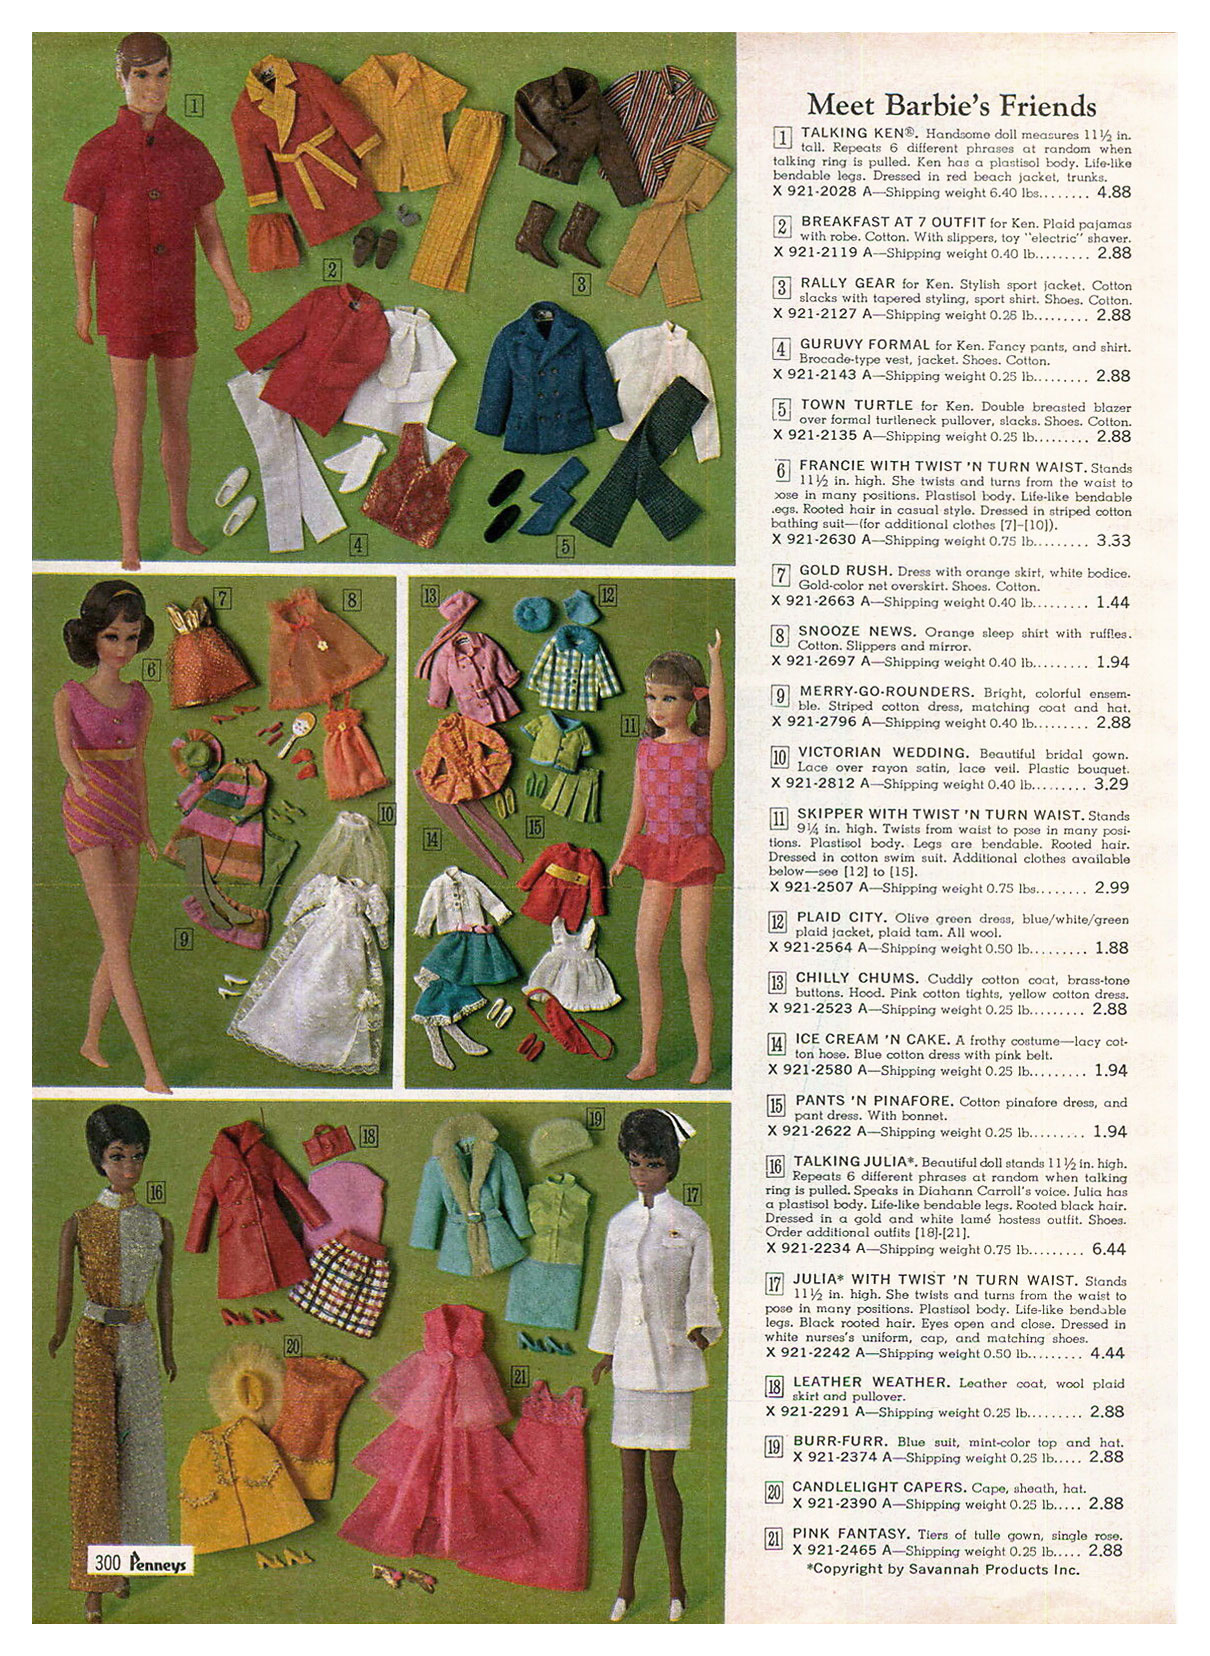 From 1969 JCPenney catalogue